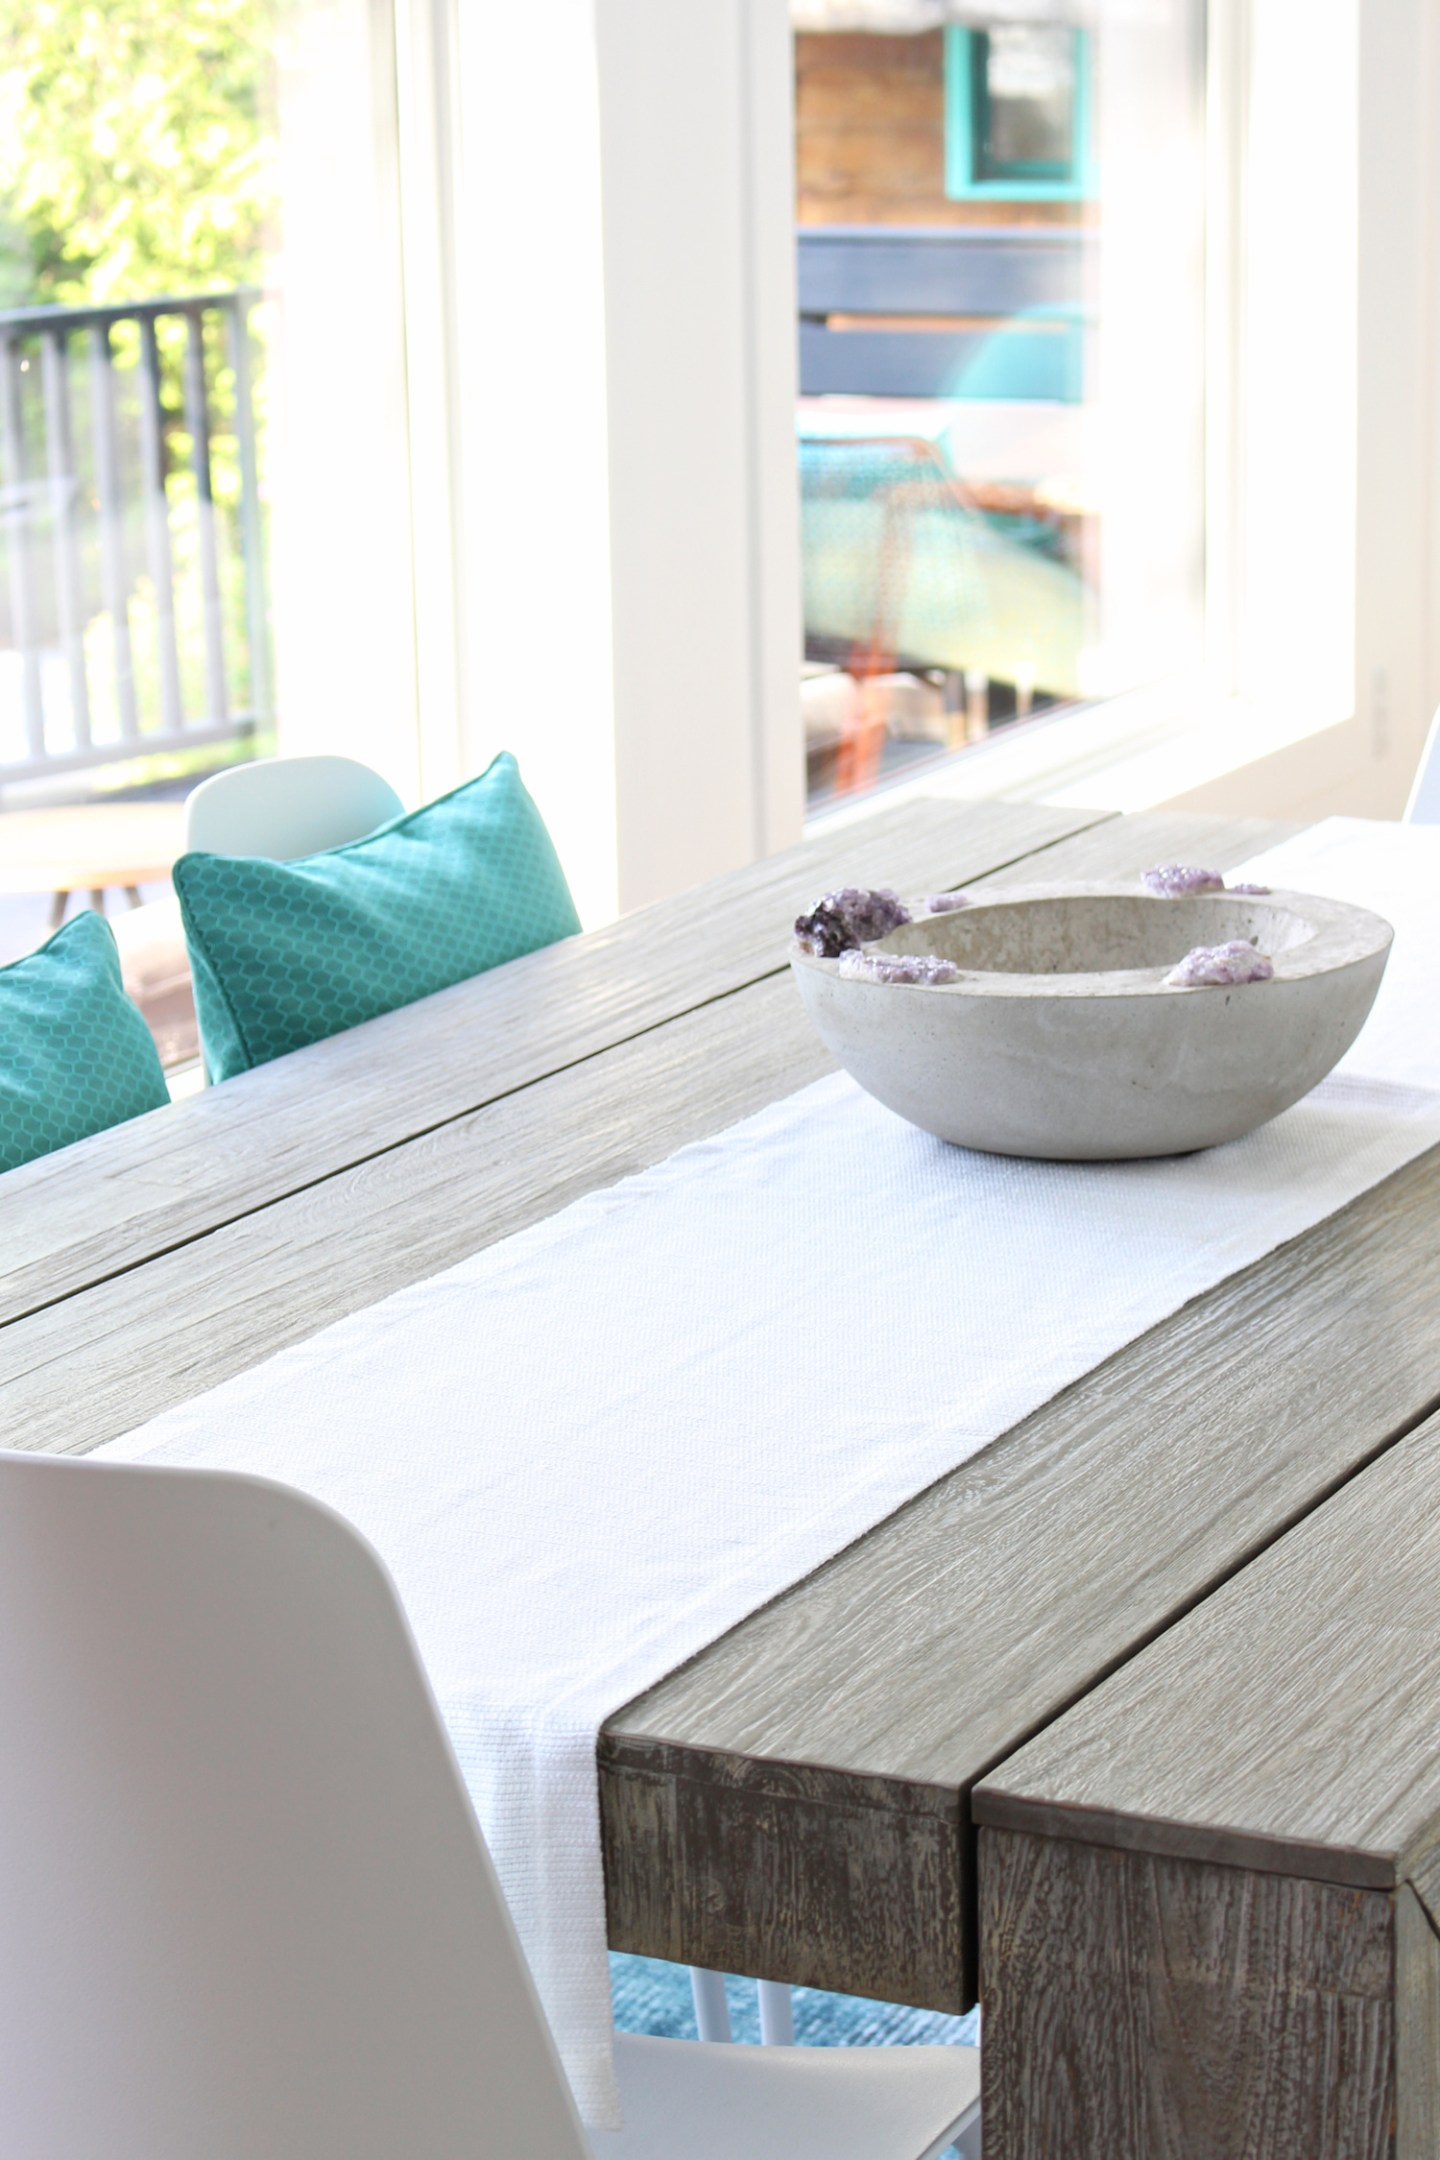 Where to Buy White Table Runners